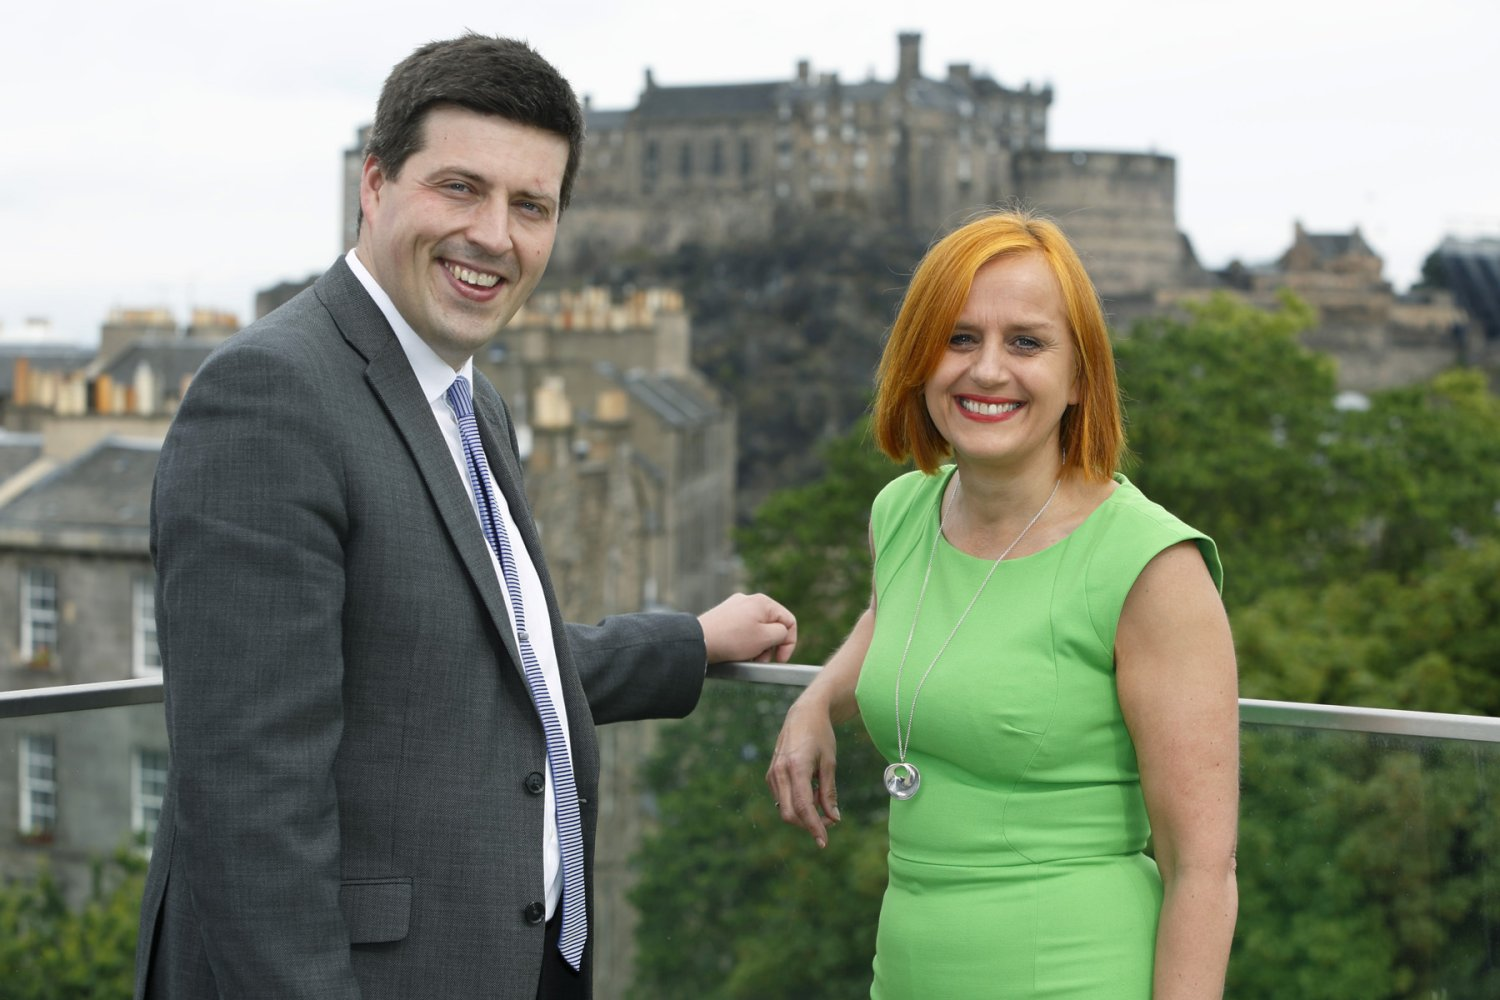 Jamie Hepburn MSP and Amanda Jones Jun 17